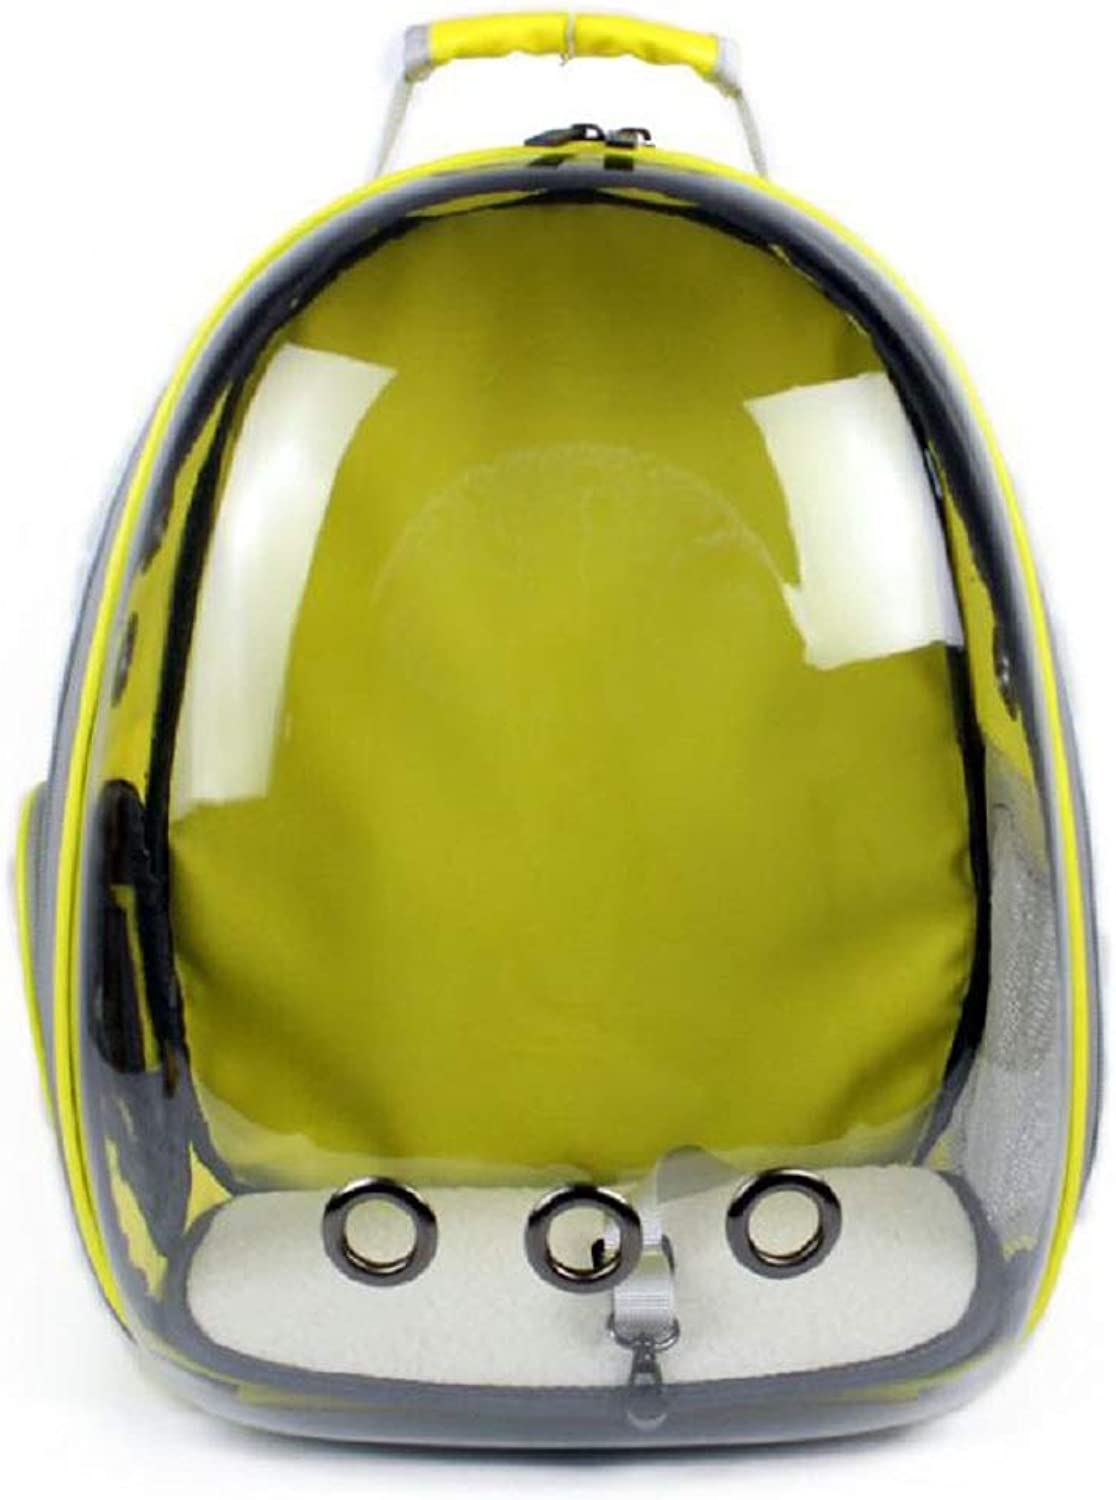 GDDYQ Pet Backpack, New Transparent Panoramic Pet Carrier Bag Vents and Mesh, Suitable for Cats and Small Pets,Yellow